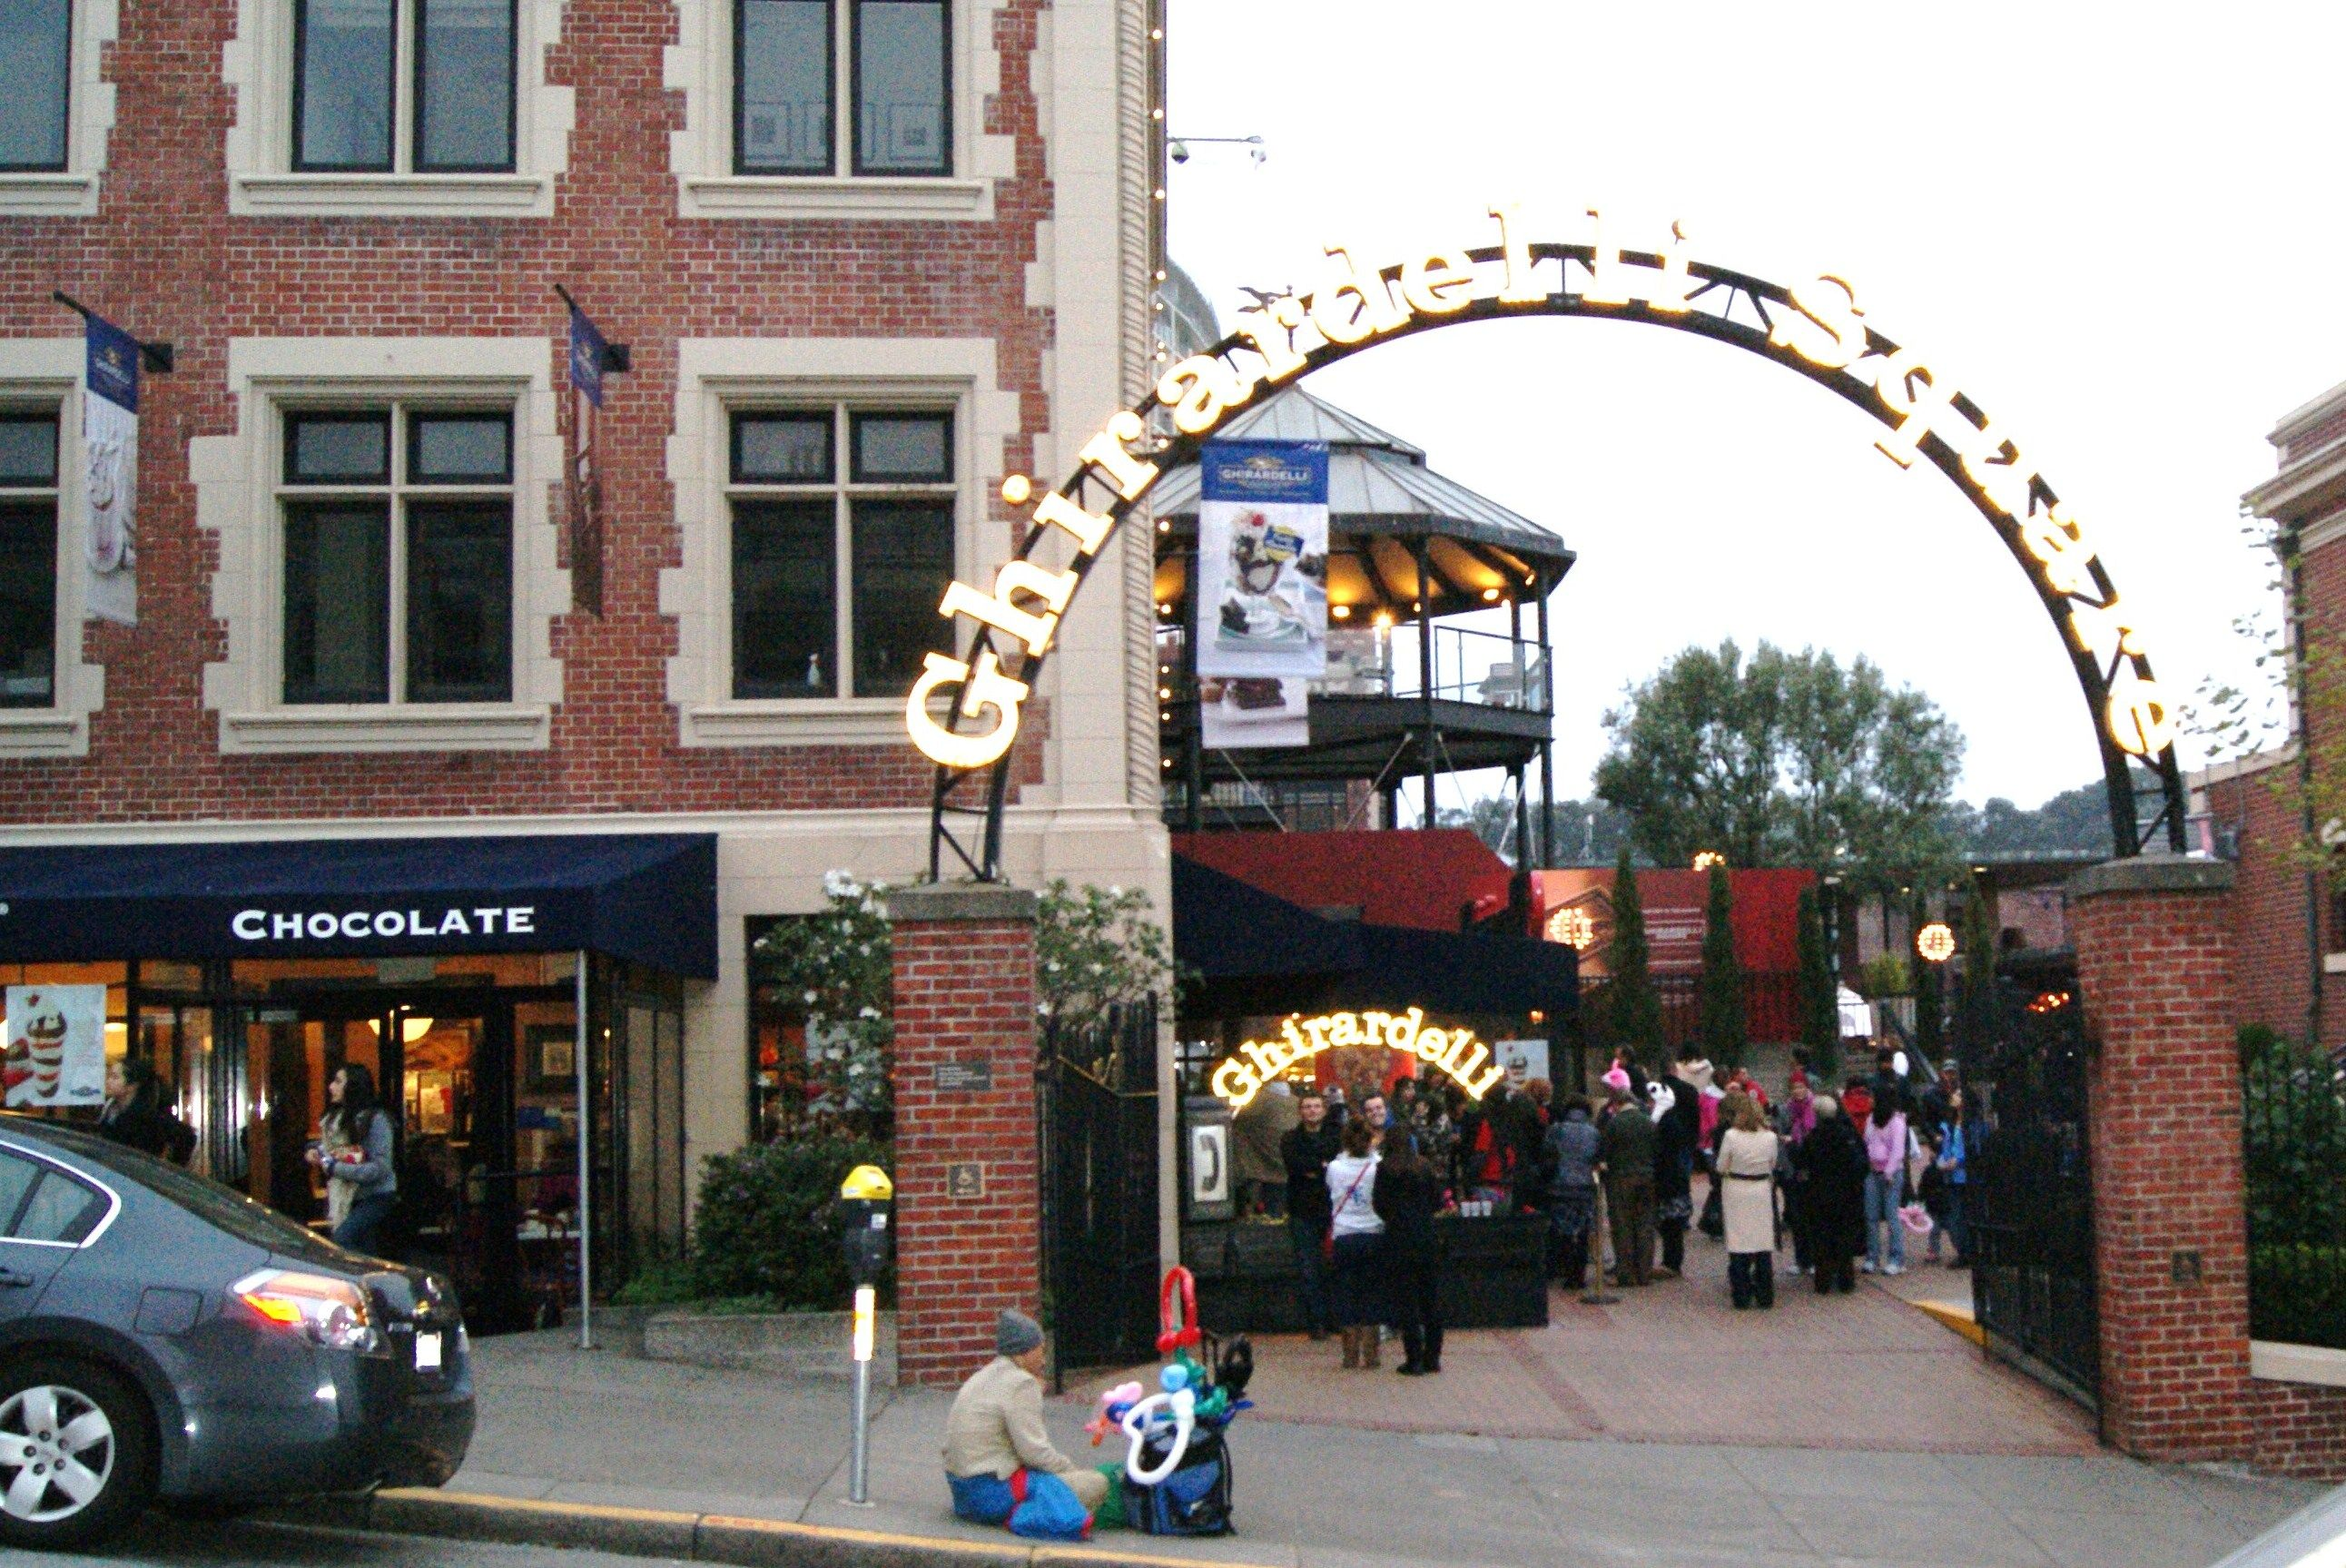 Ghirardelli Square - I used to walk by this on my way home from volleyball games - beautiful view of the sunsets.